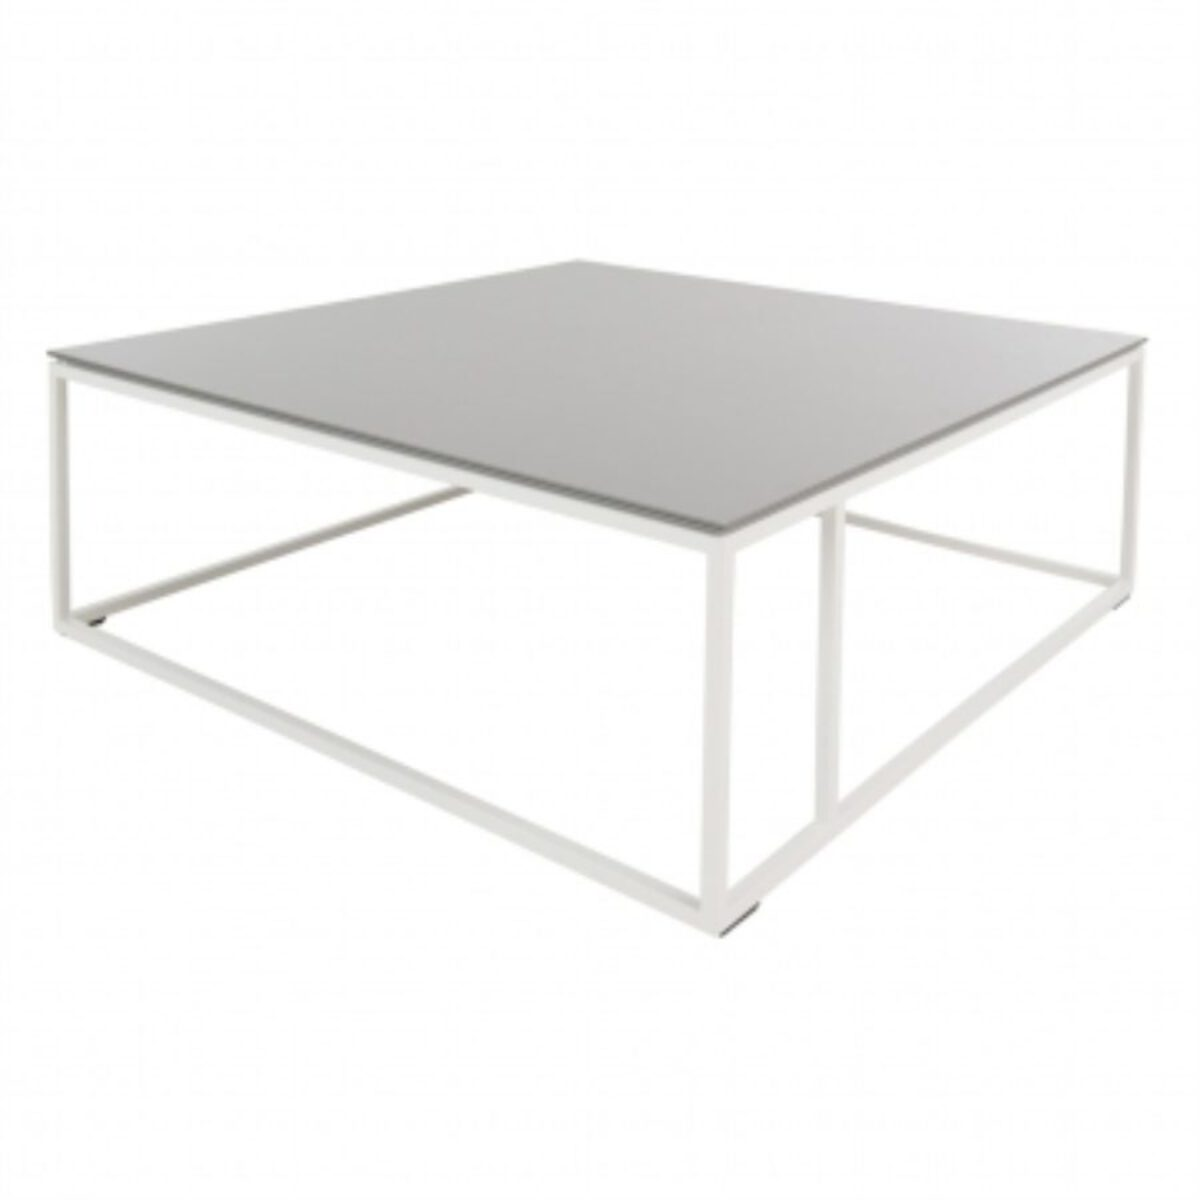 Bert Plantagie Tafel Wireless